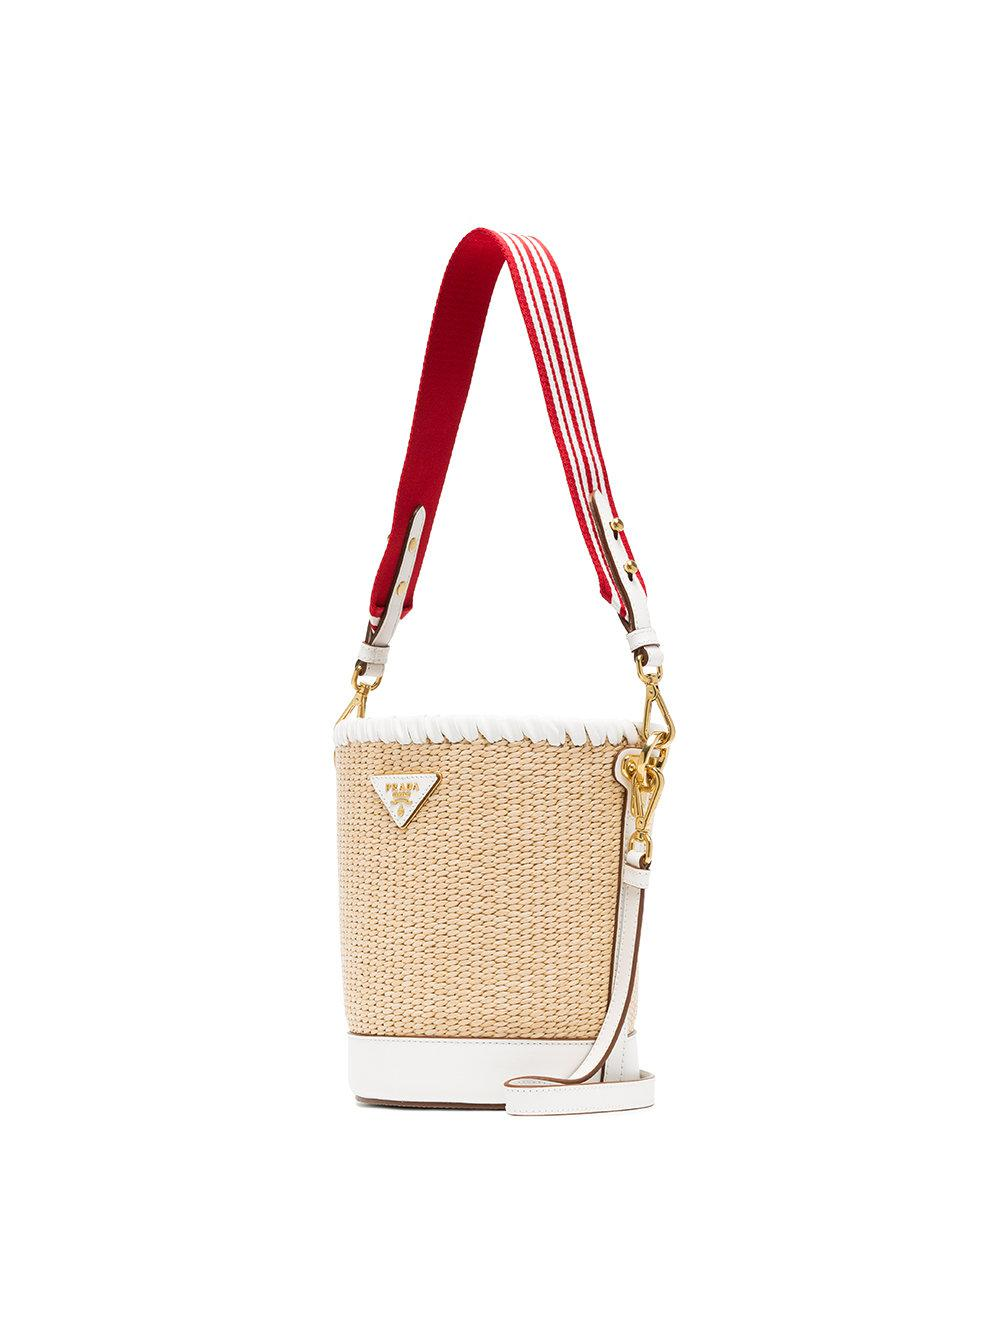 506ad0b2c530 Prada White, Nude And Red Logo Raffia Bucket Bag in Natural - Lyst